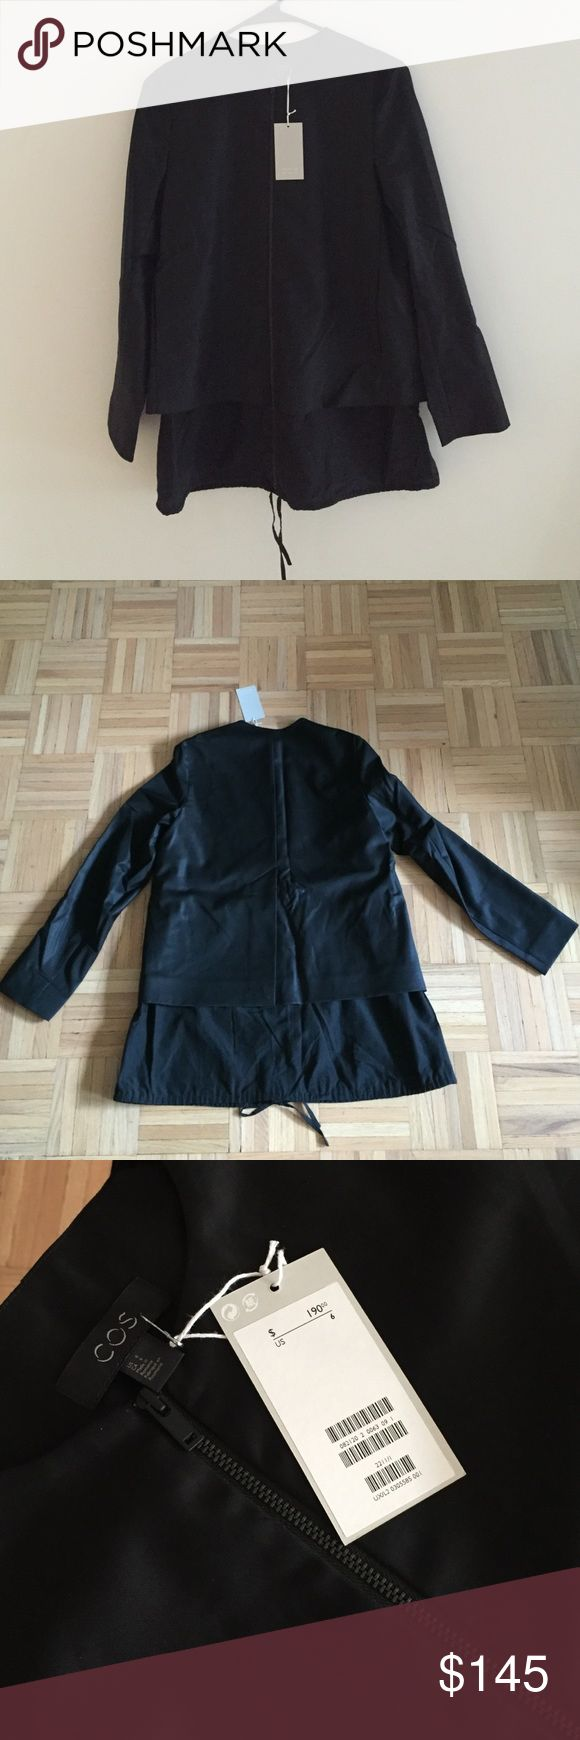 COS black jacket Brand New Cos Jacket! Very lightweight. Shell 100% wool/ lining: 50% cotton, 50% rayon. Like what you see buy or make an offer! COS Jackets & Coats